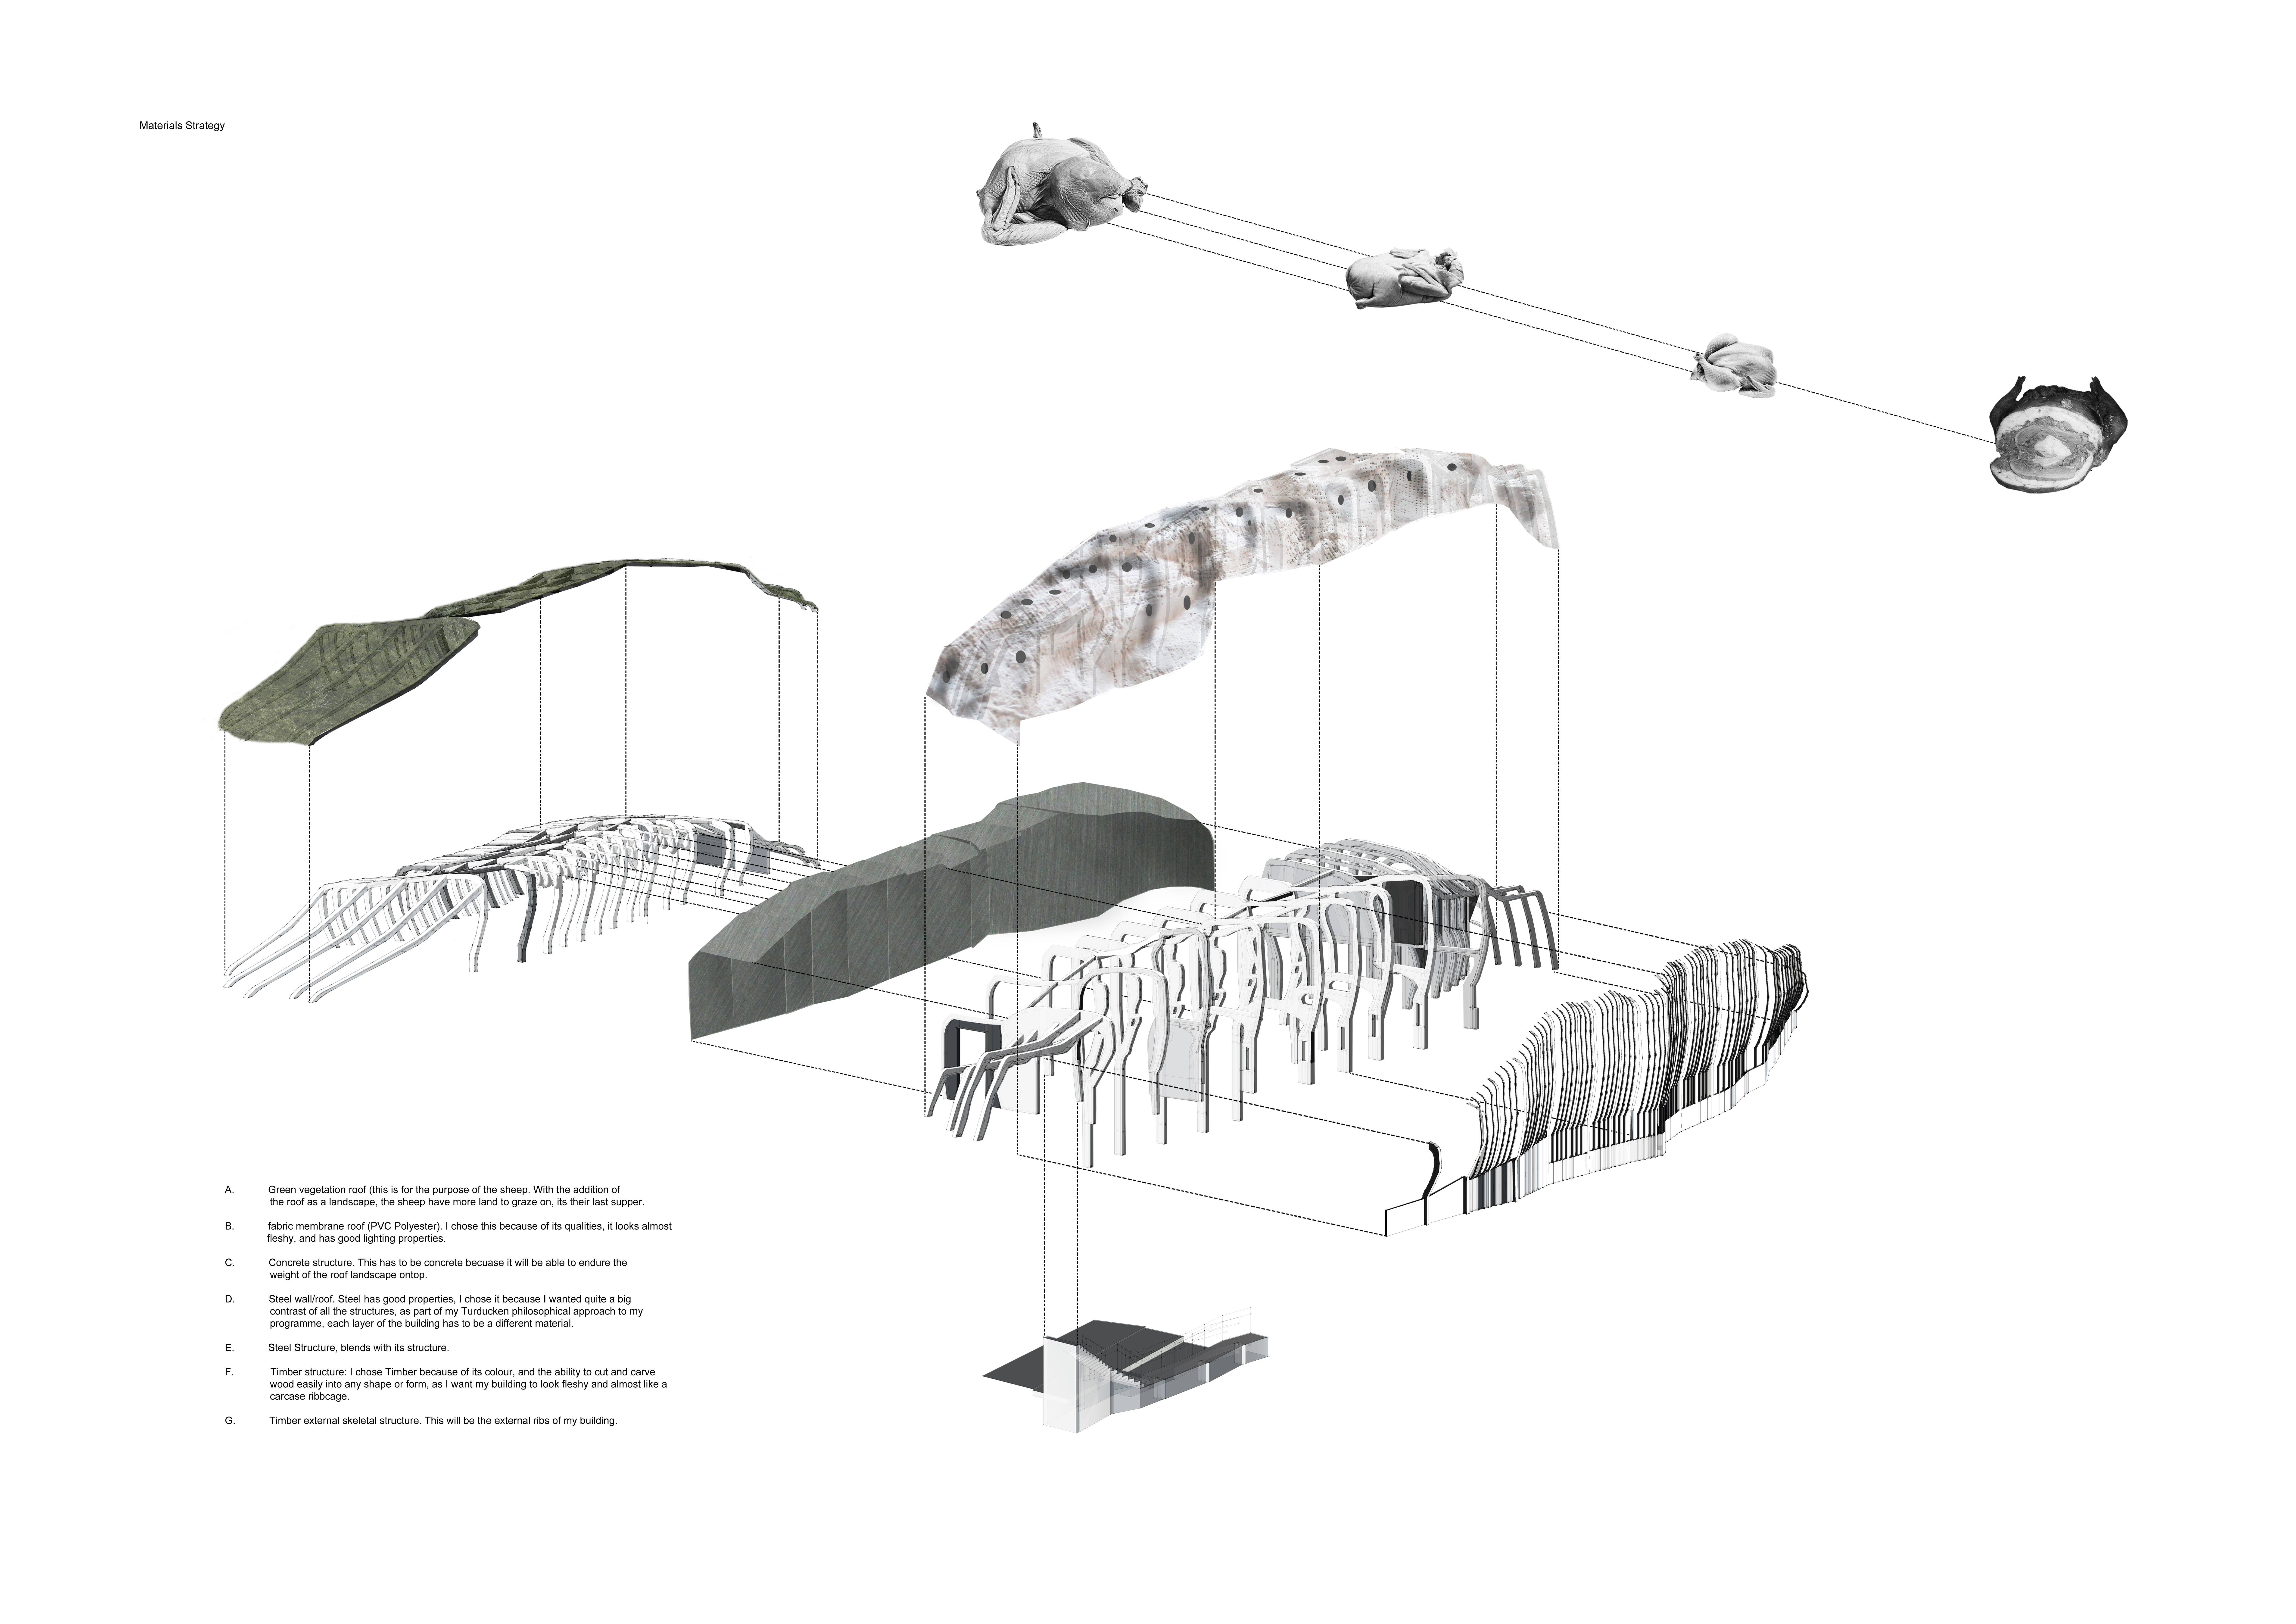 Pin By Arben Jashari On Architectural Drawings